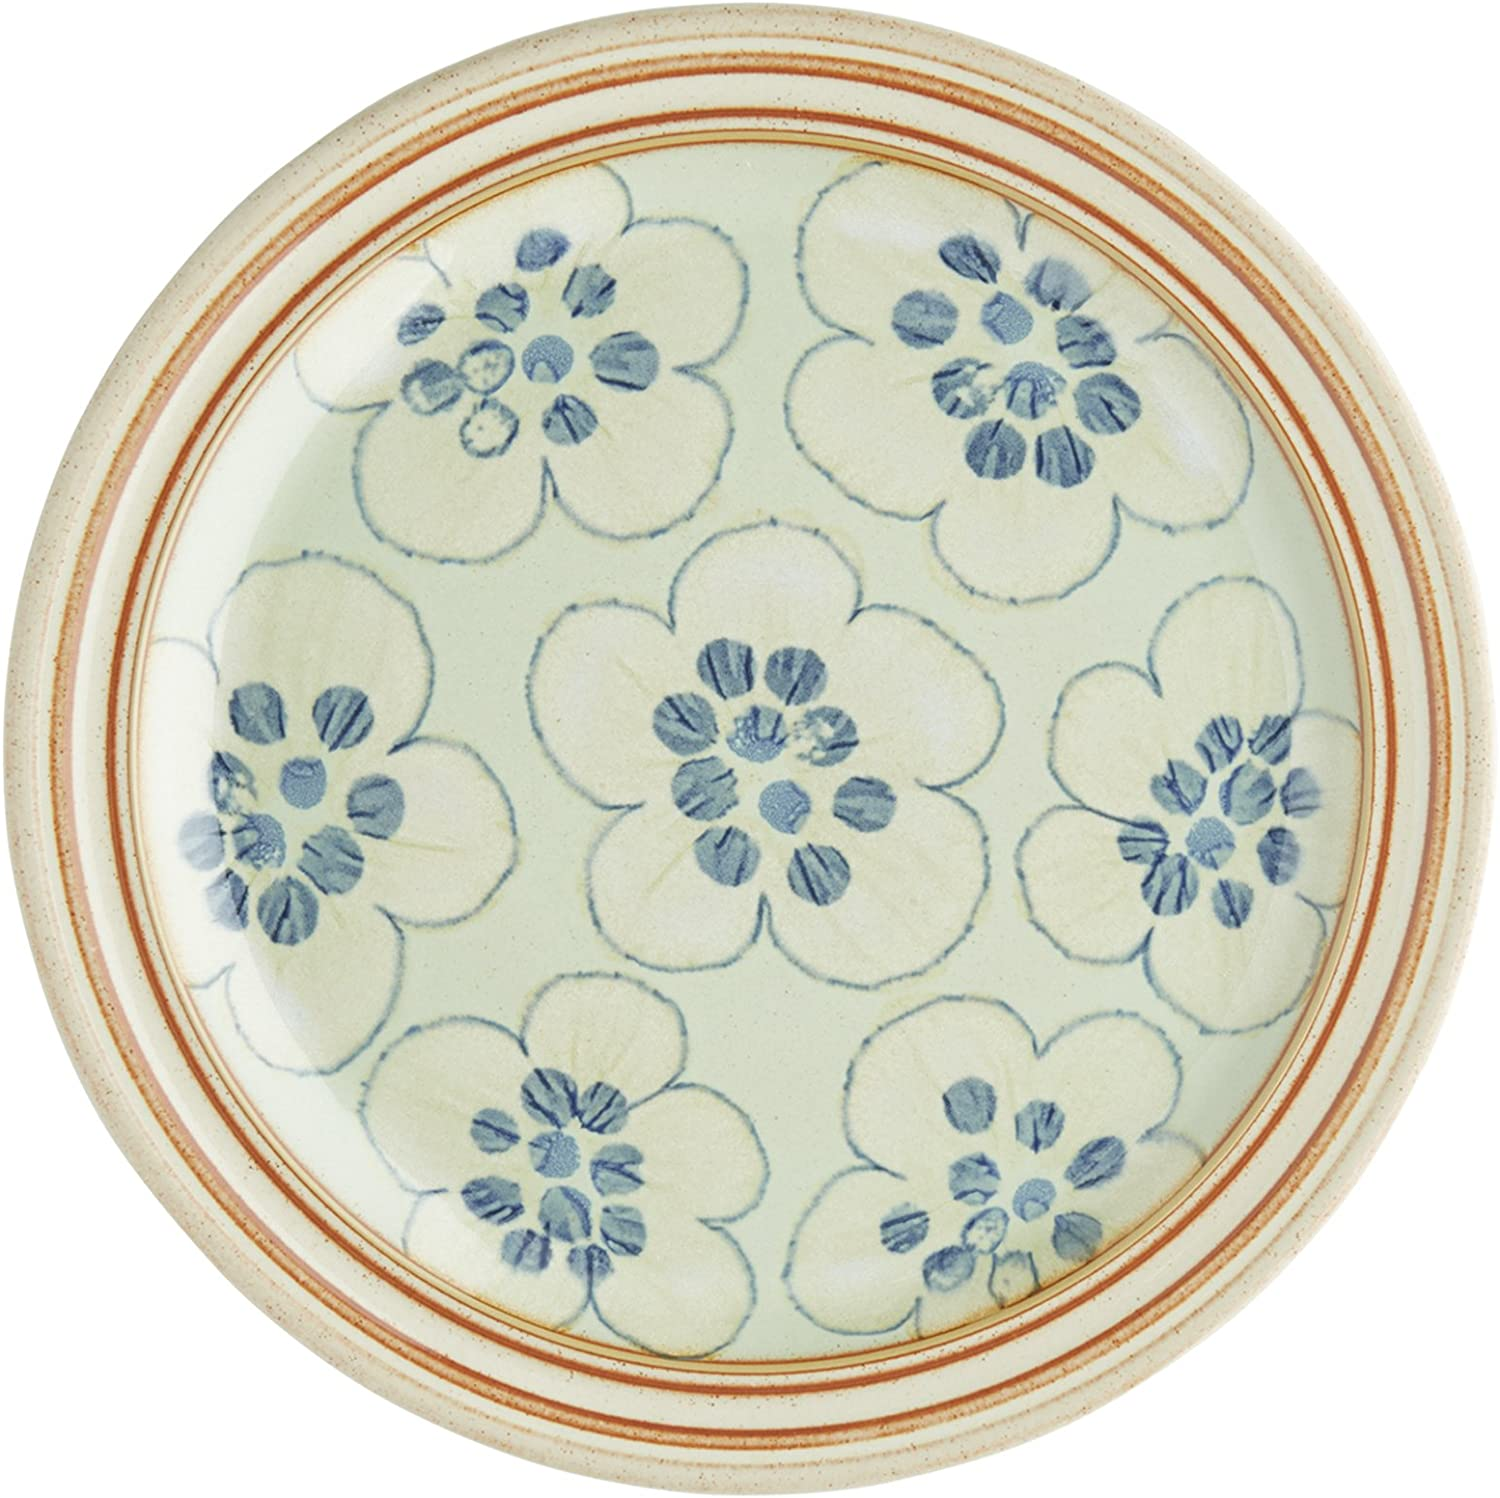 Denby USA Heritage 4 Piece Orchard Place setting Dinnerware Set, Multicolor Accent Salad Plate